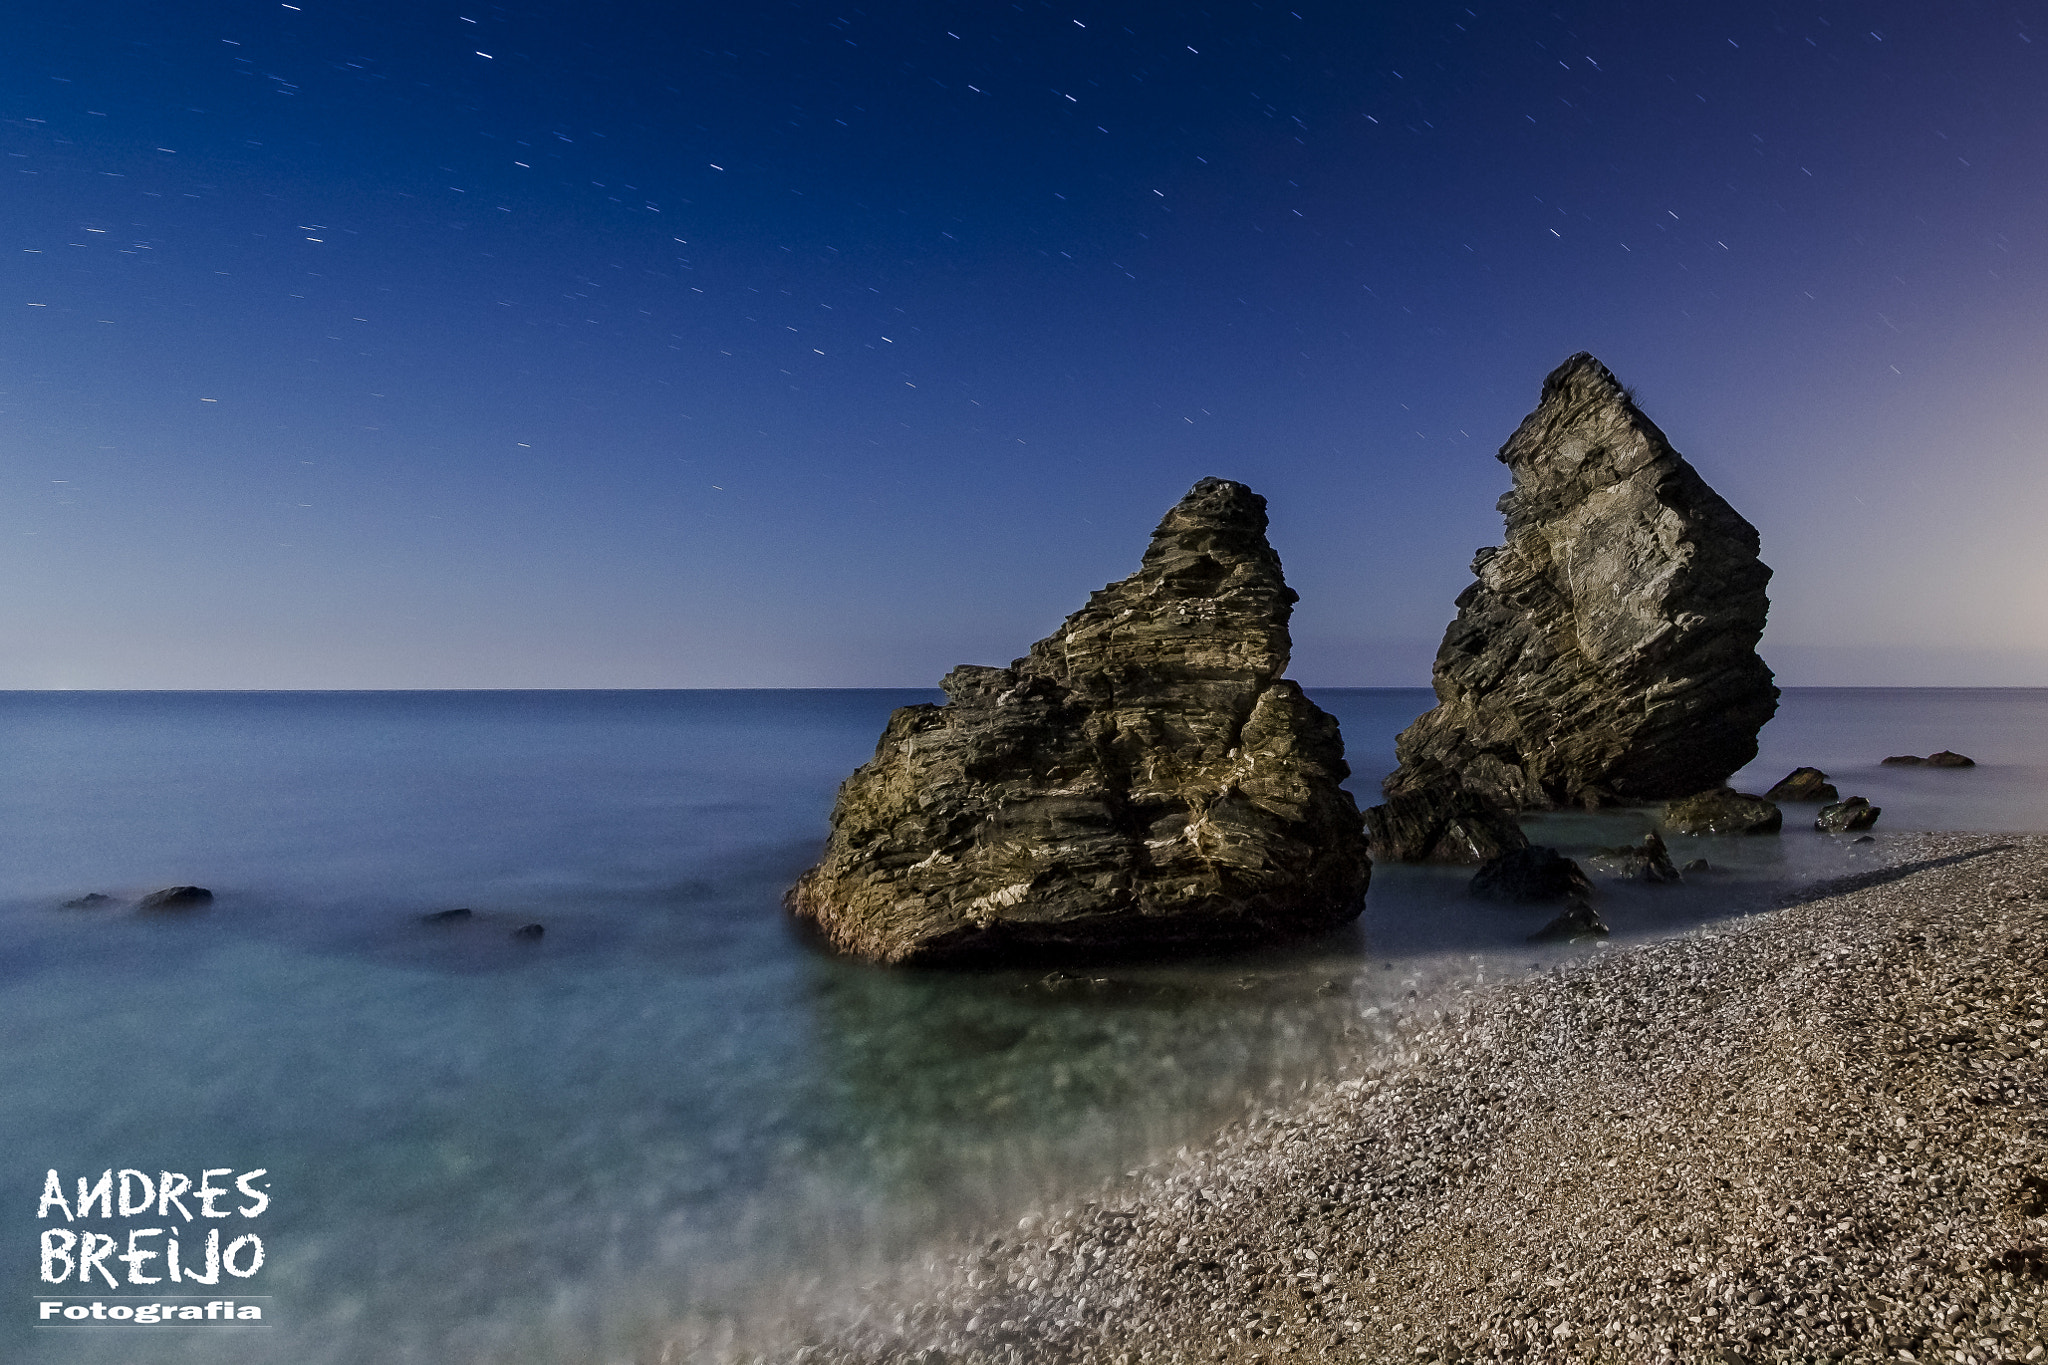 Photograph Transparencias nocturnas - Playa Molino de Papel. by Andres Breijo on 500px